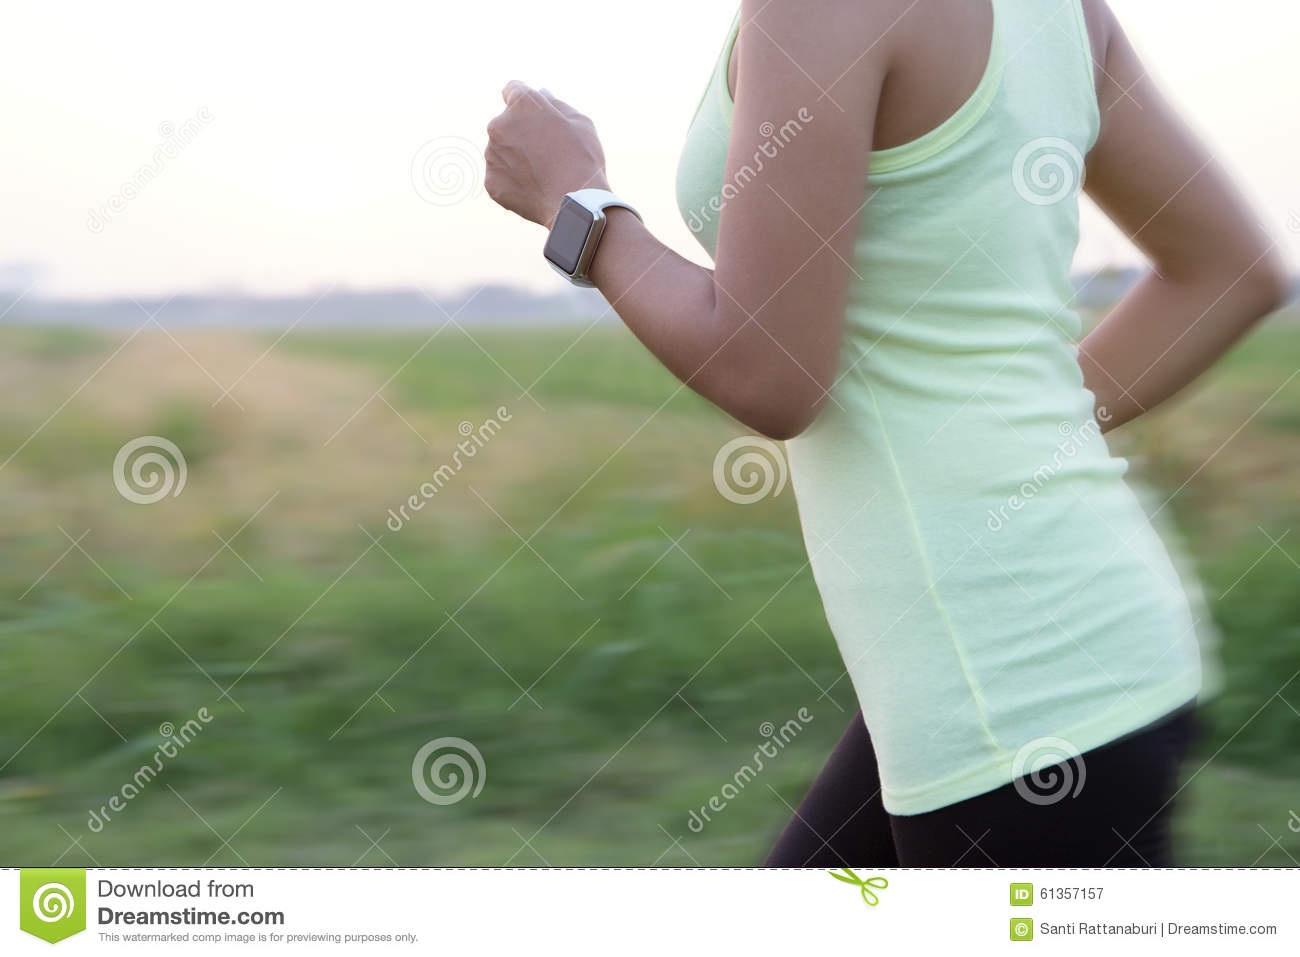 Women wear hand watch running motion blur concept